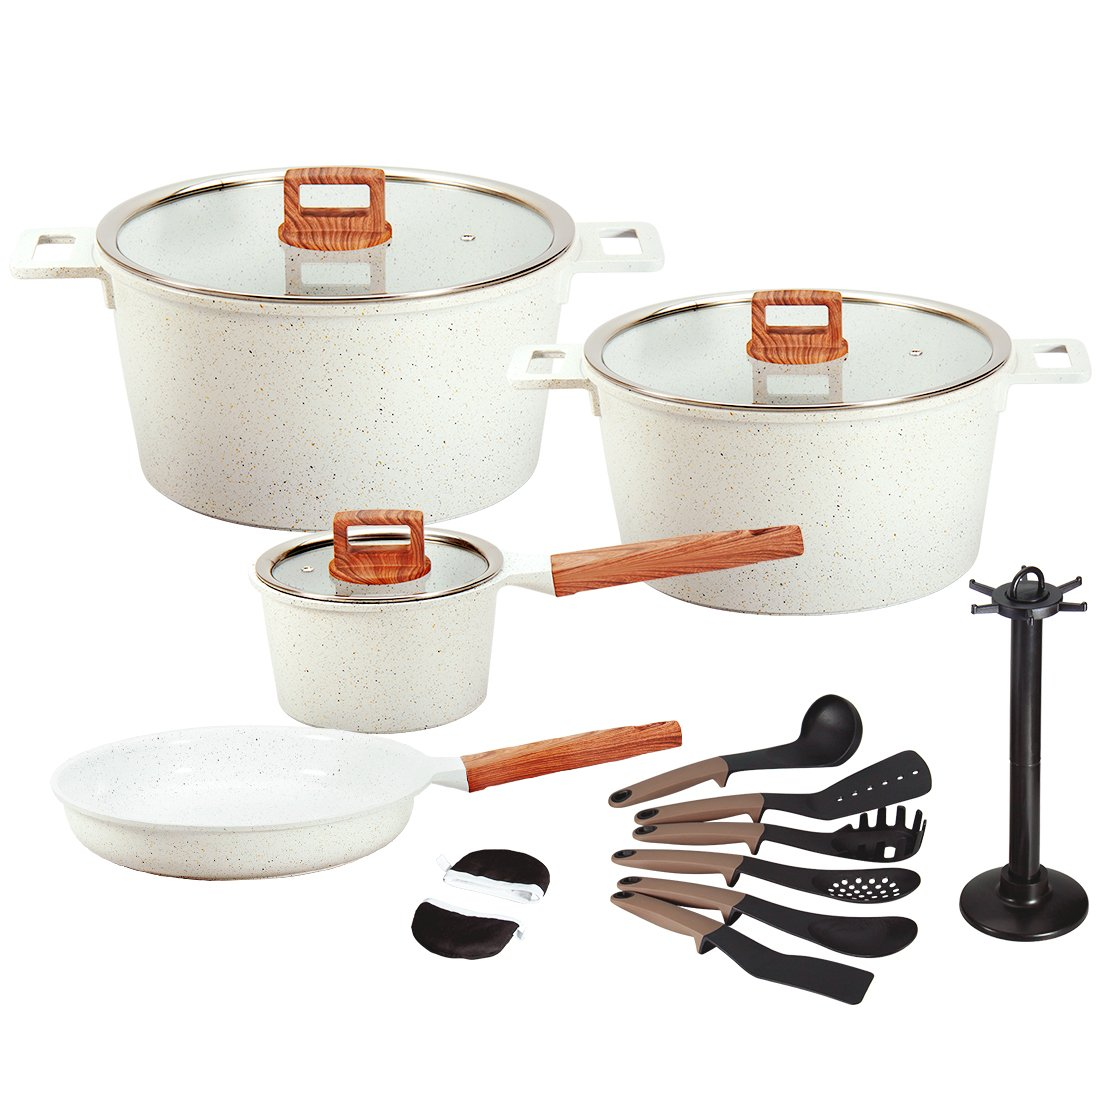 Ceramic Cookware Set Dishwasher Safe Scratch Resistant PFOA Free Nonstick Induction Kitchen Aluminum Cookware Set with Cooking Utensil Pack -16 (WHITE)